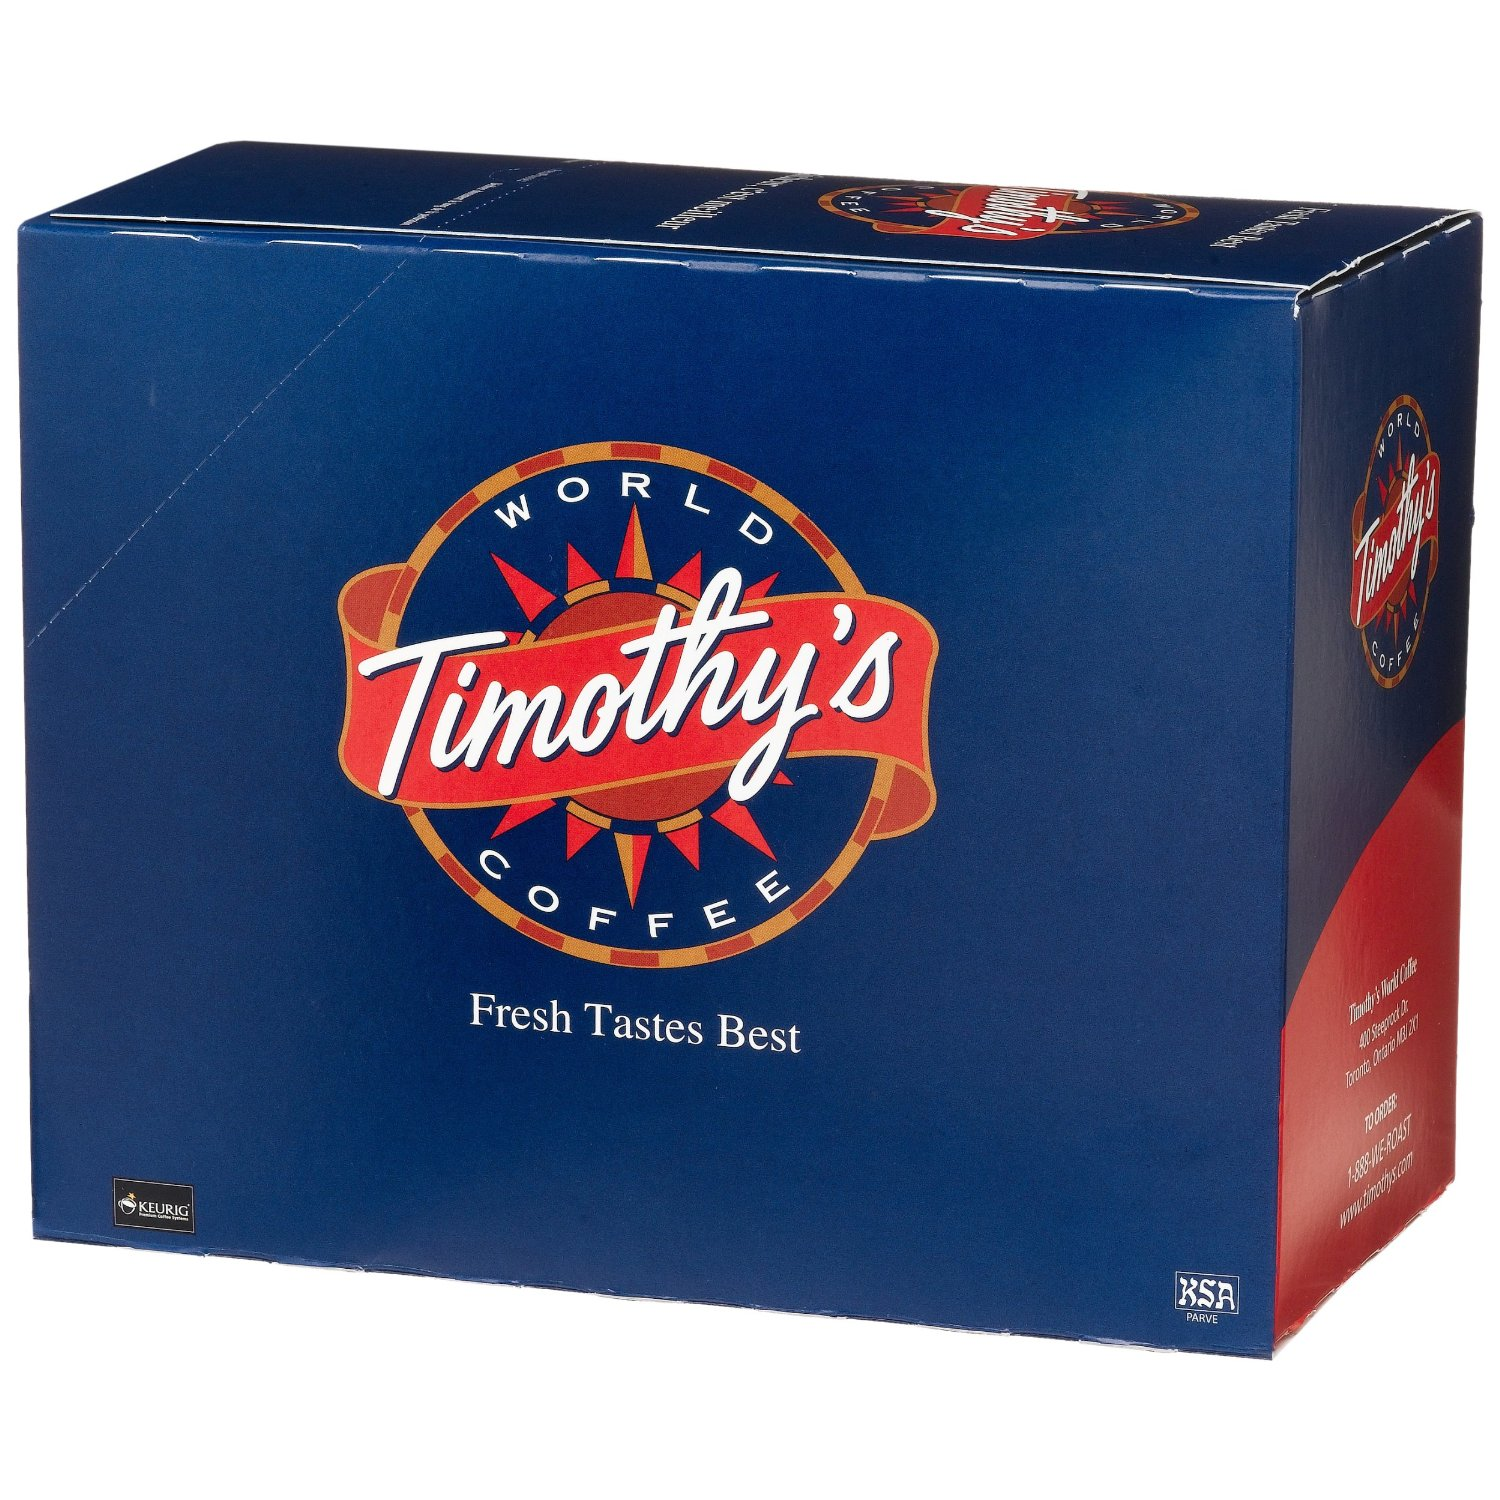 Timothy's World Coffee Rainforest Espresso Decaf K-cups